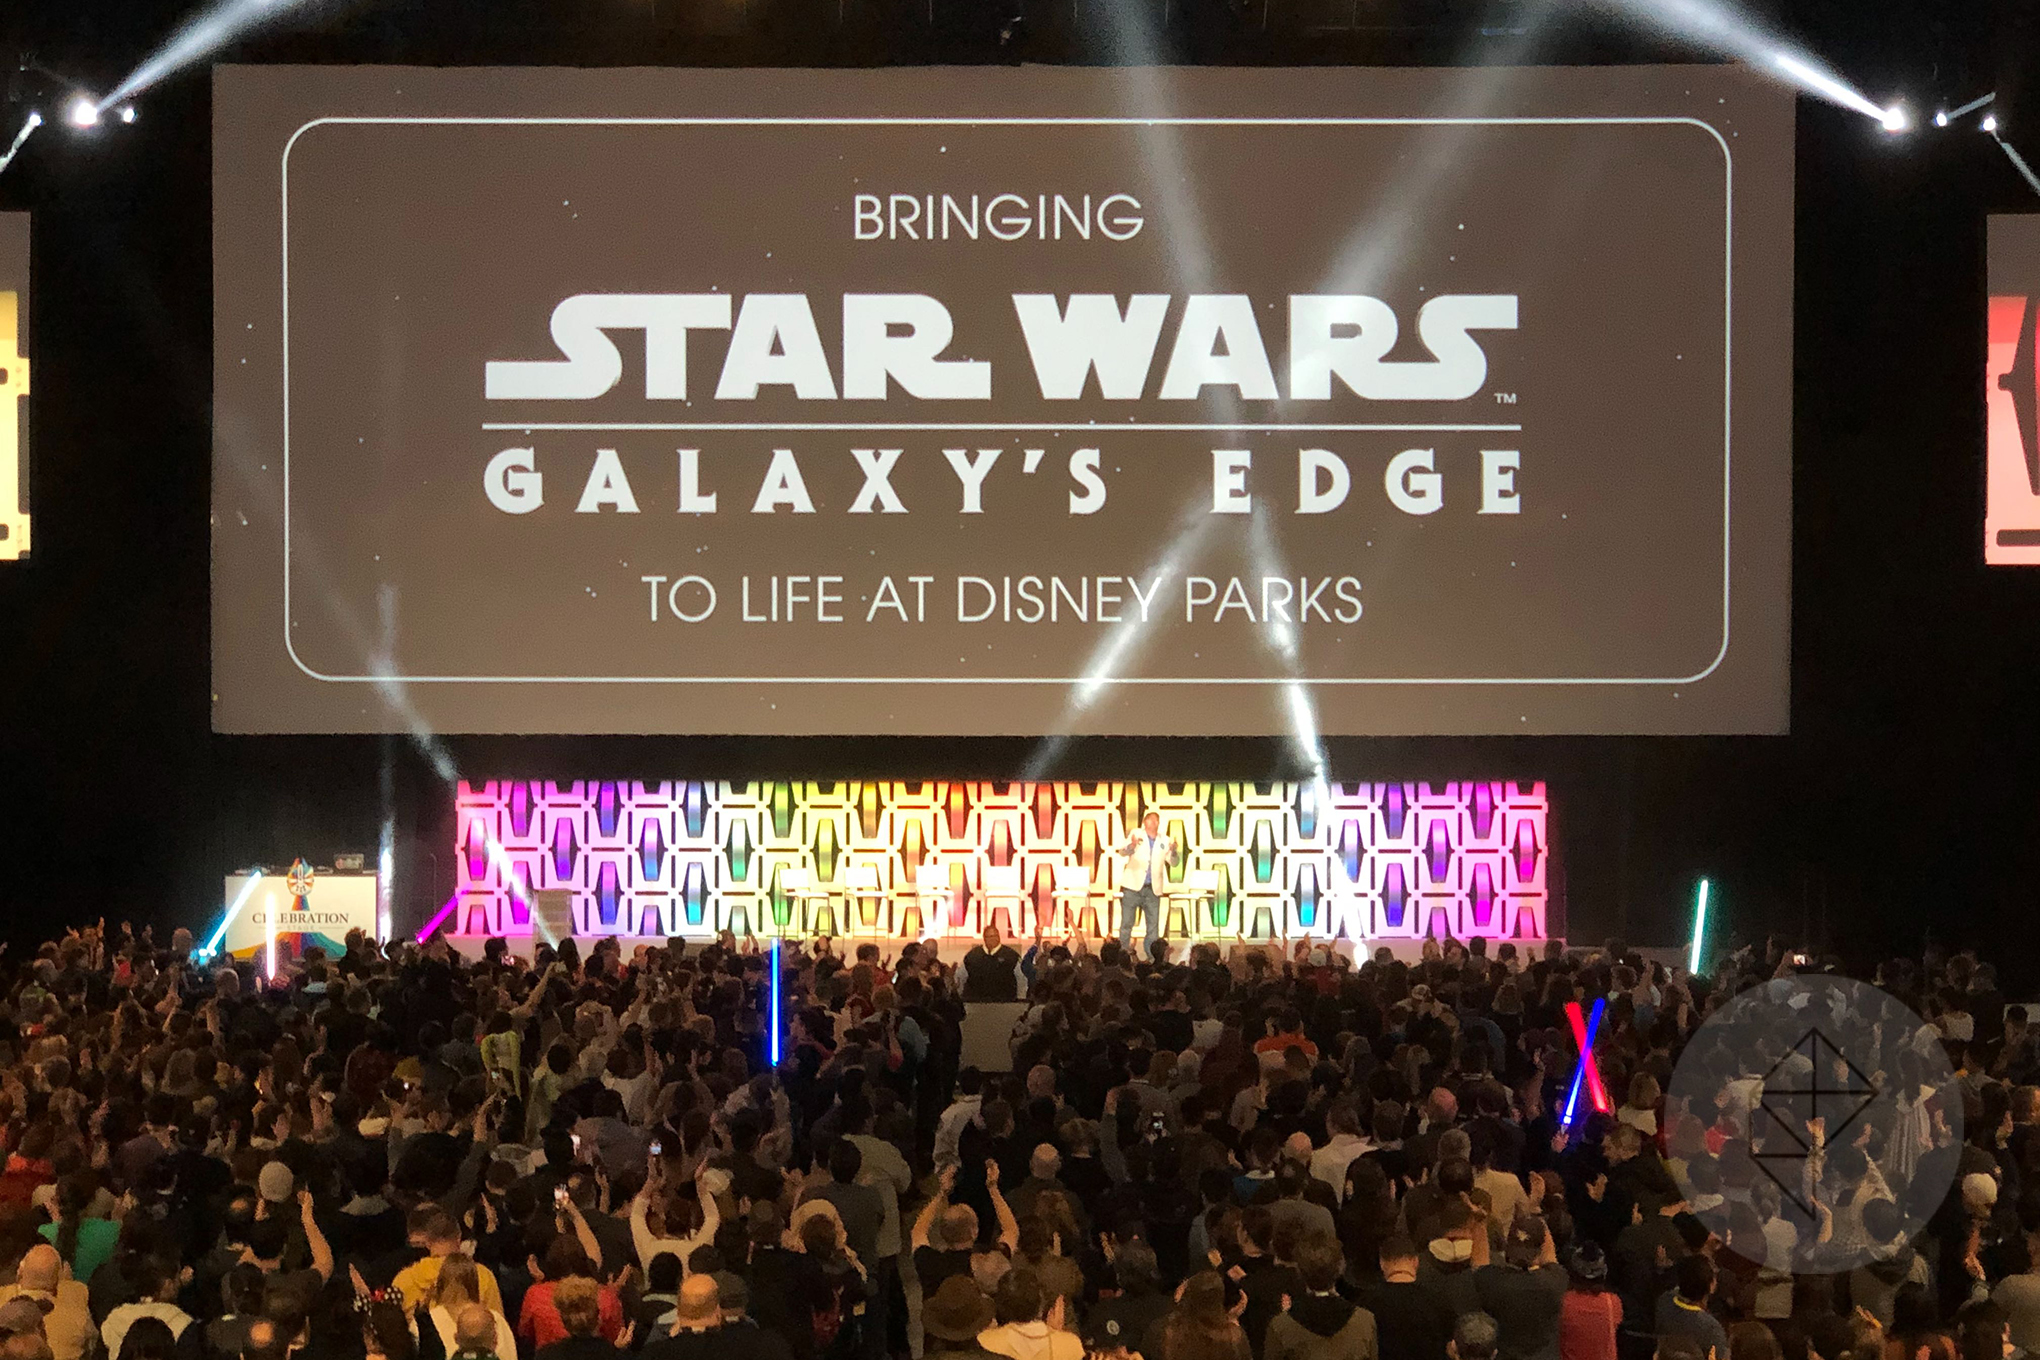 Disney's Star Wars Land will be one big multiplayer game thanks to mobile app